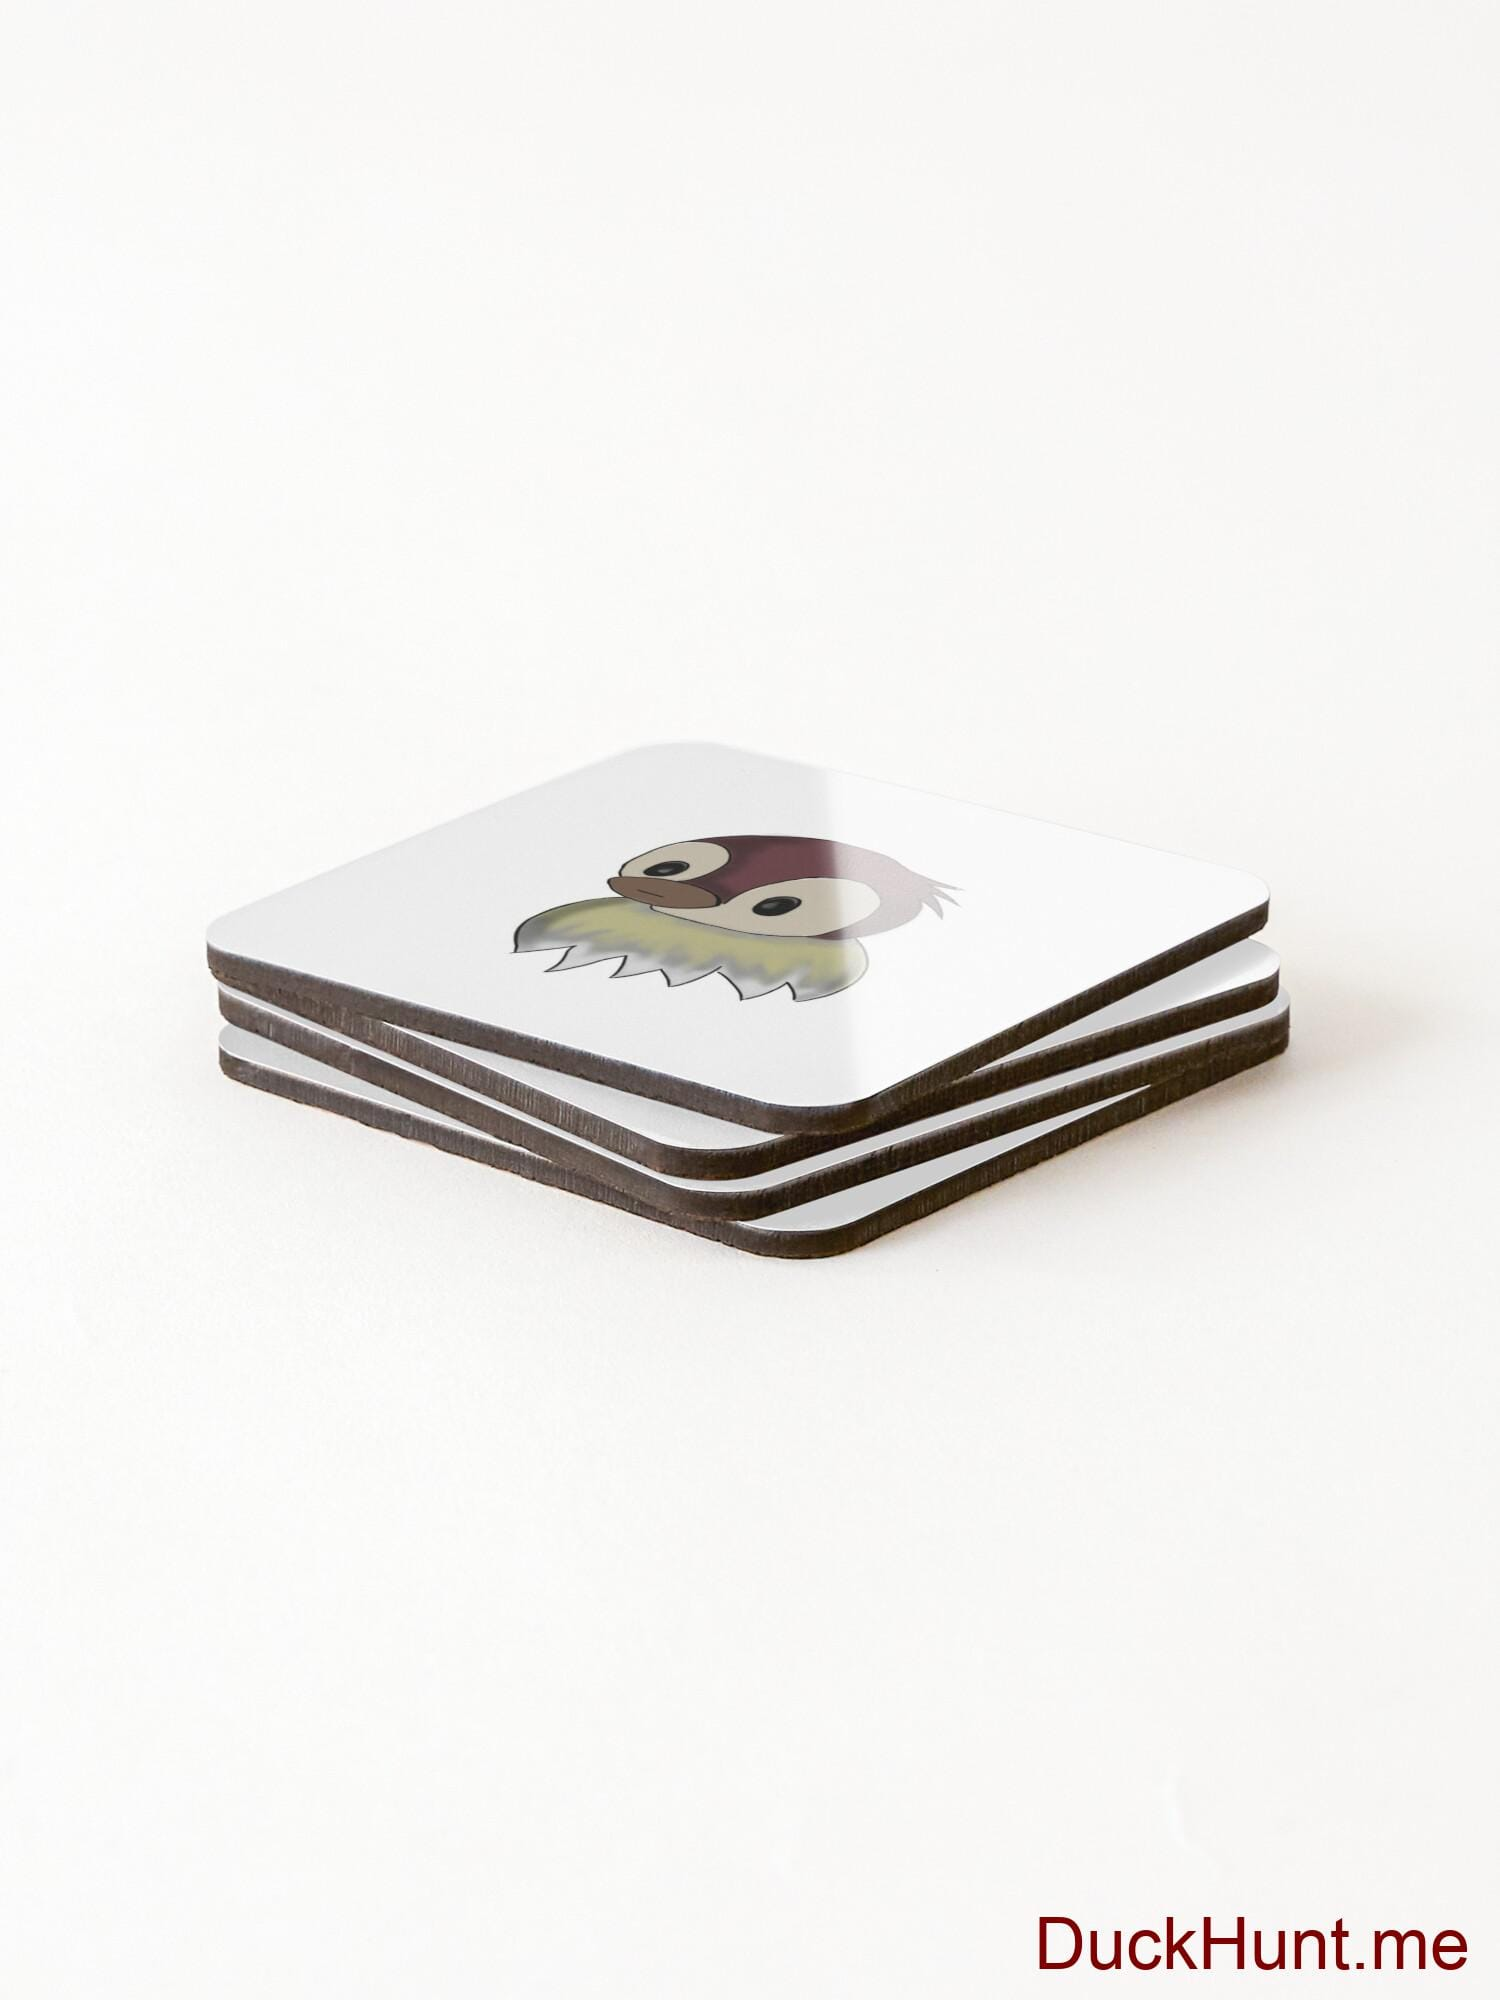 Ghost Duck (fogless) Coasters (Set of 4) alternative image 3